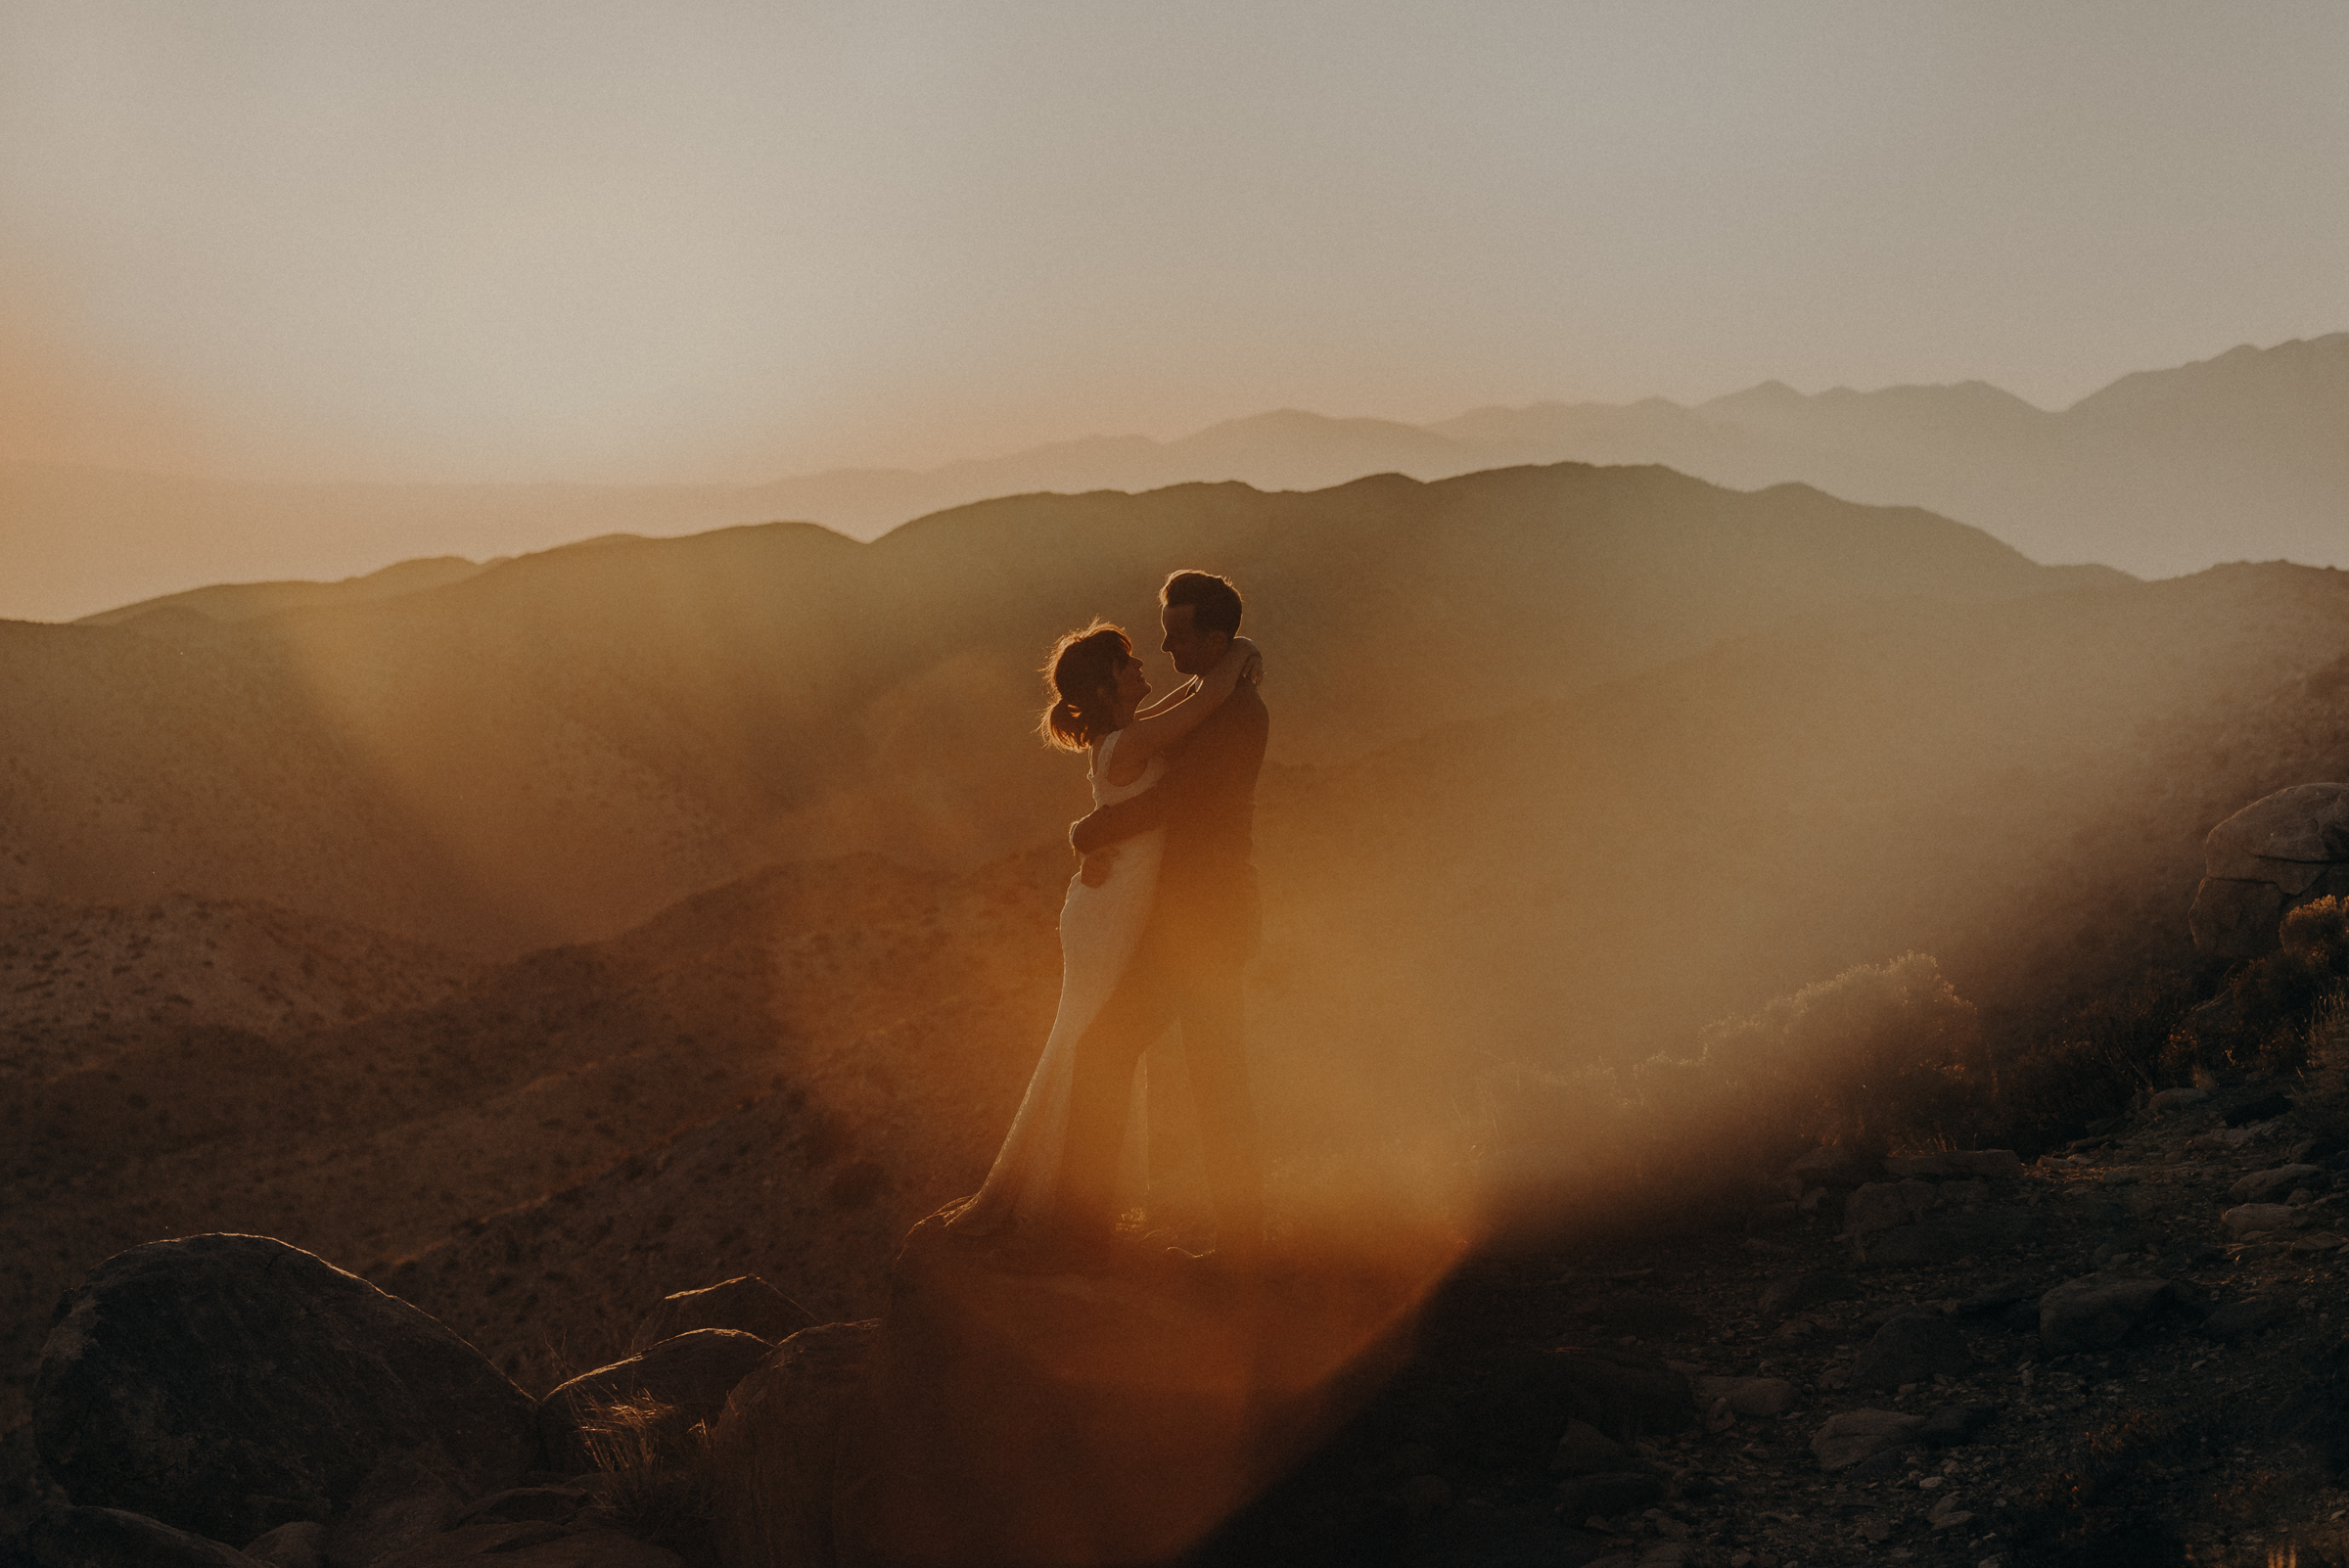 Joshua Tree Elopement - Los Angeles Wedding Photographers - IsaiahAndTaylor.com-100.jpg